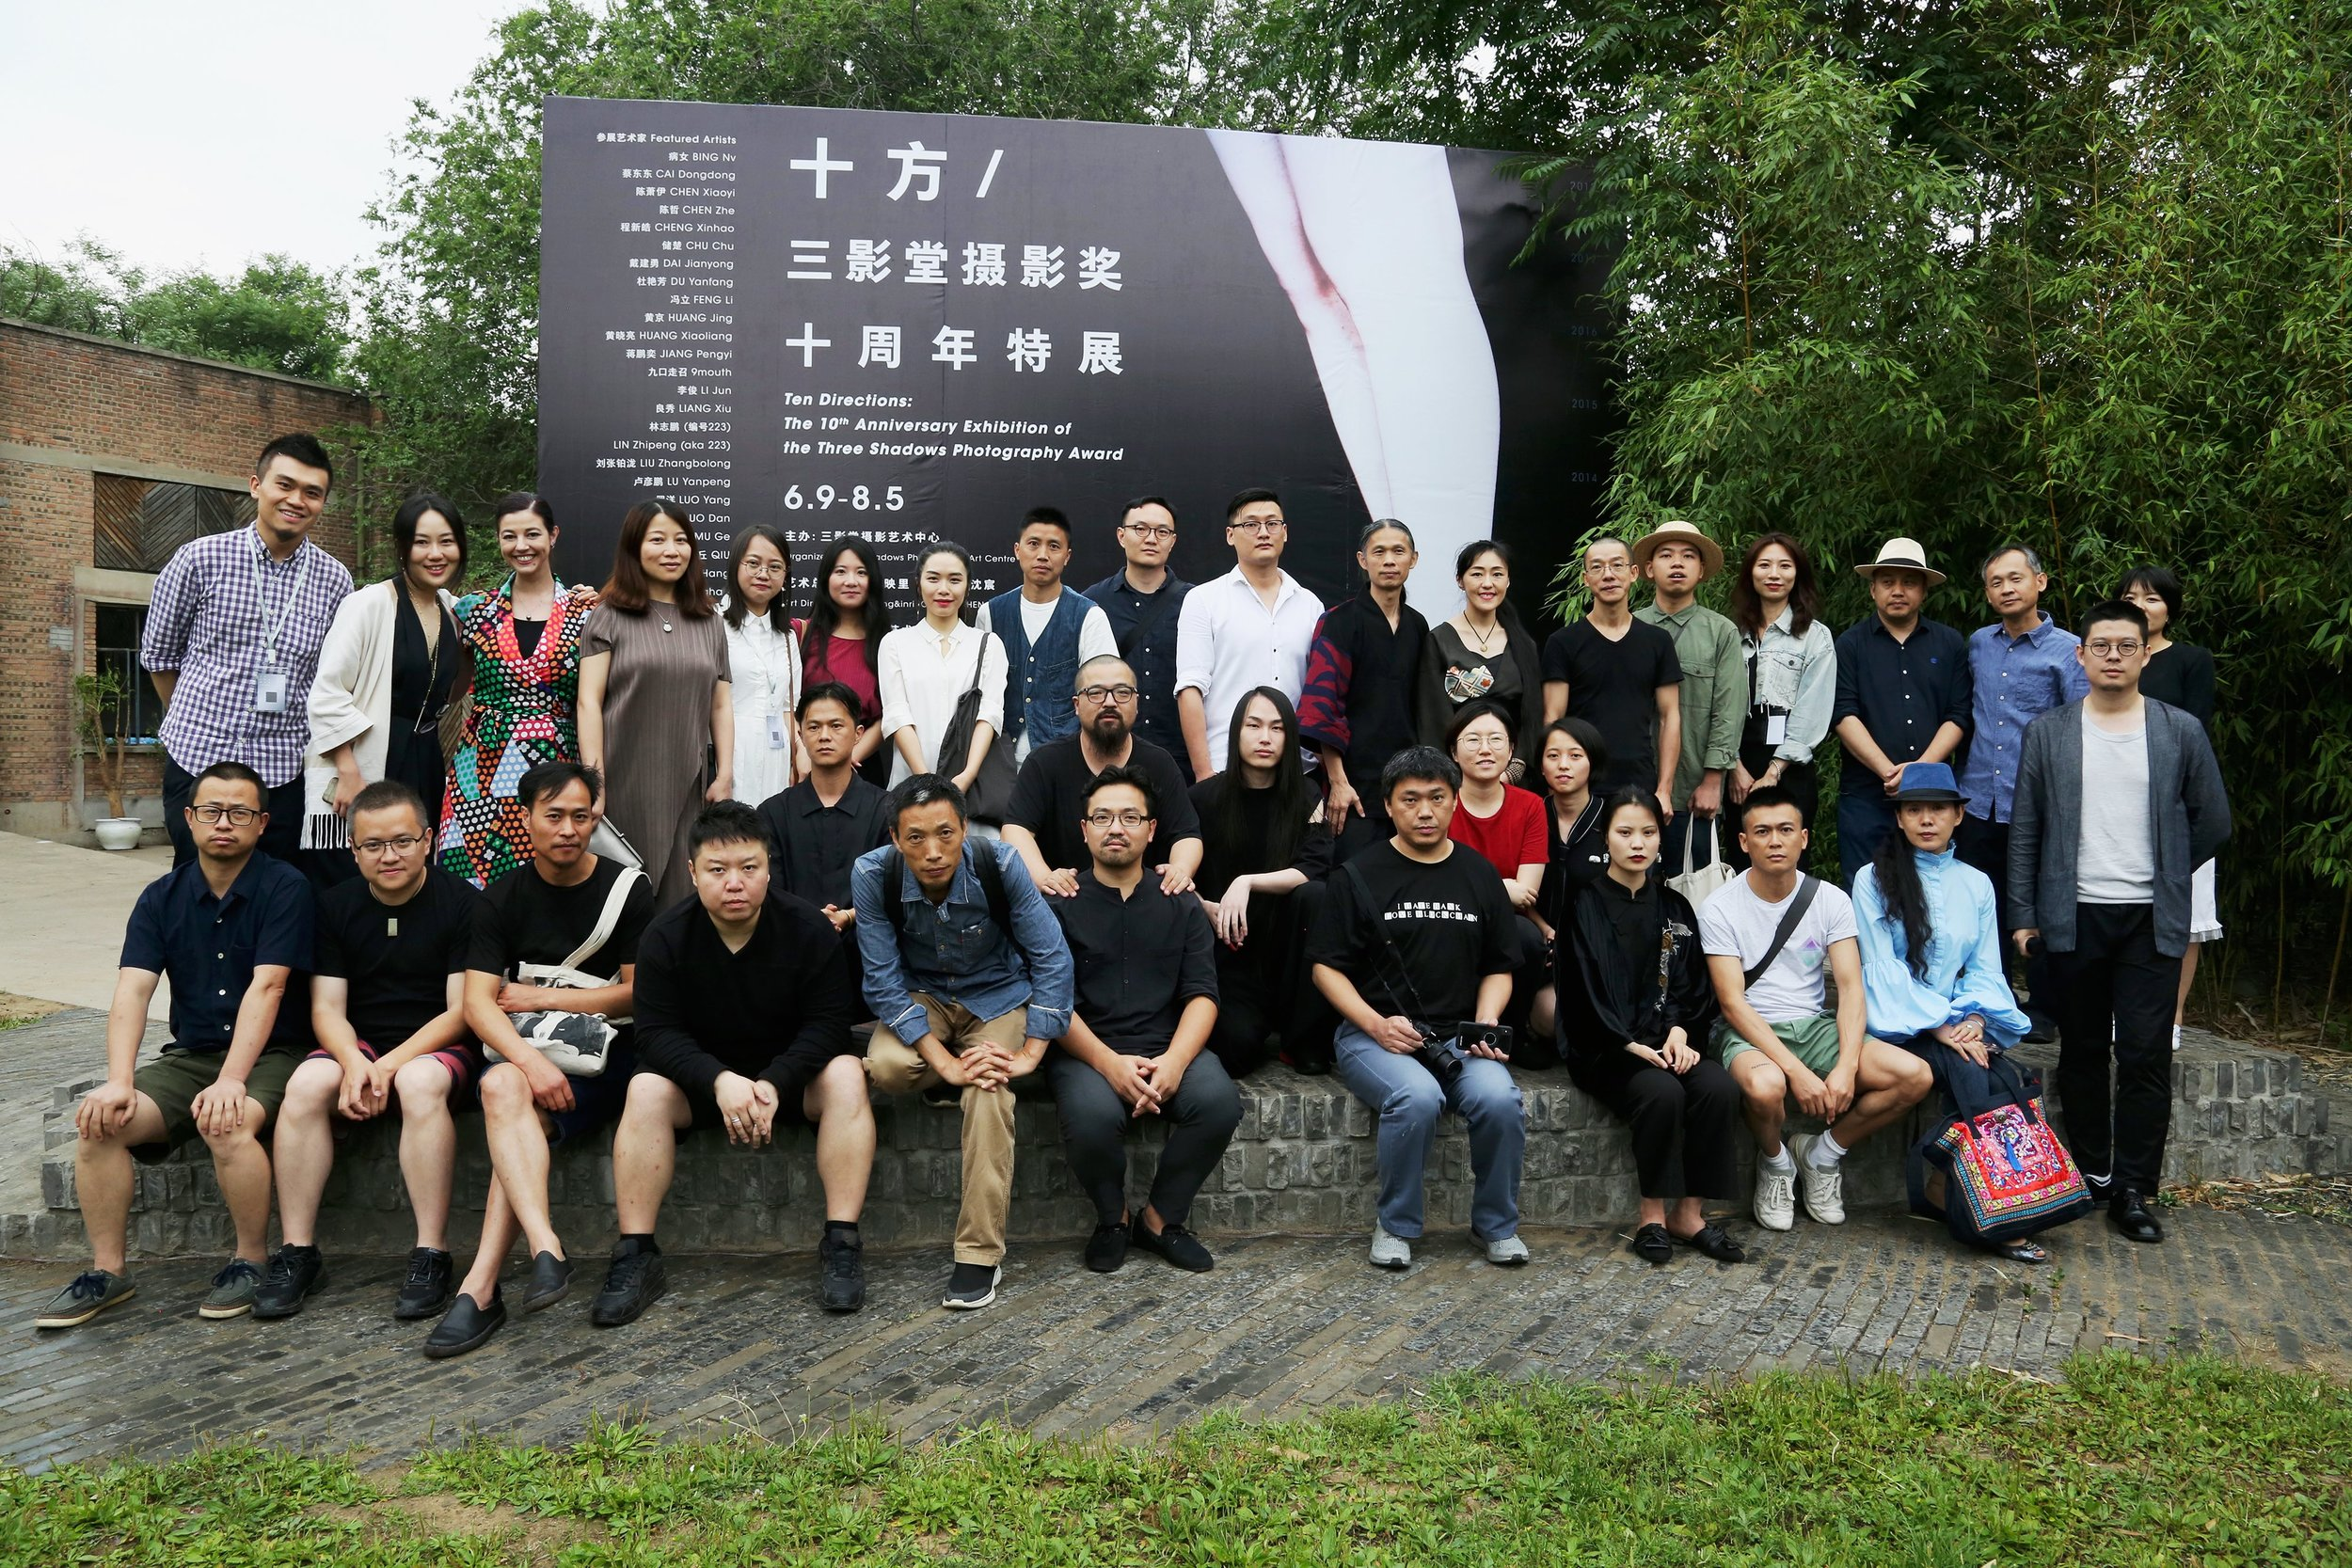 Photo de groupe des artistes et commissaires de l'exposition  Ten Directions: The 10th Anniversary Exhibition of the Three Shadows Photography Award